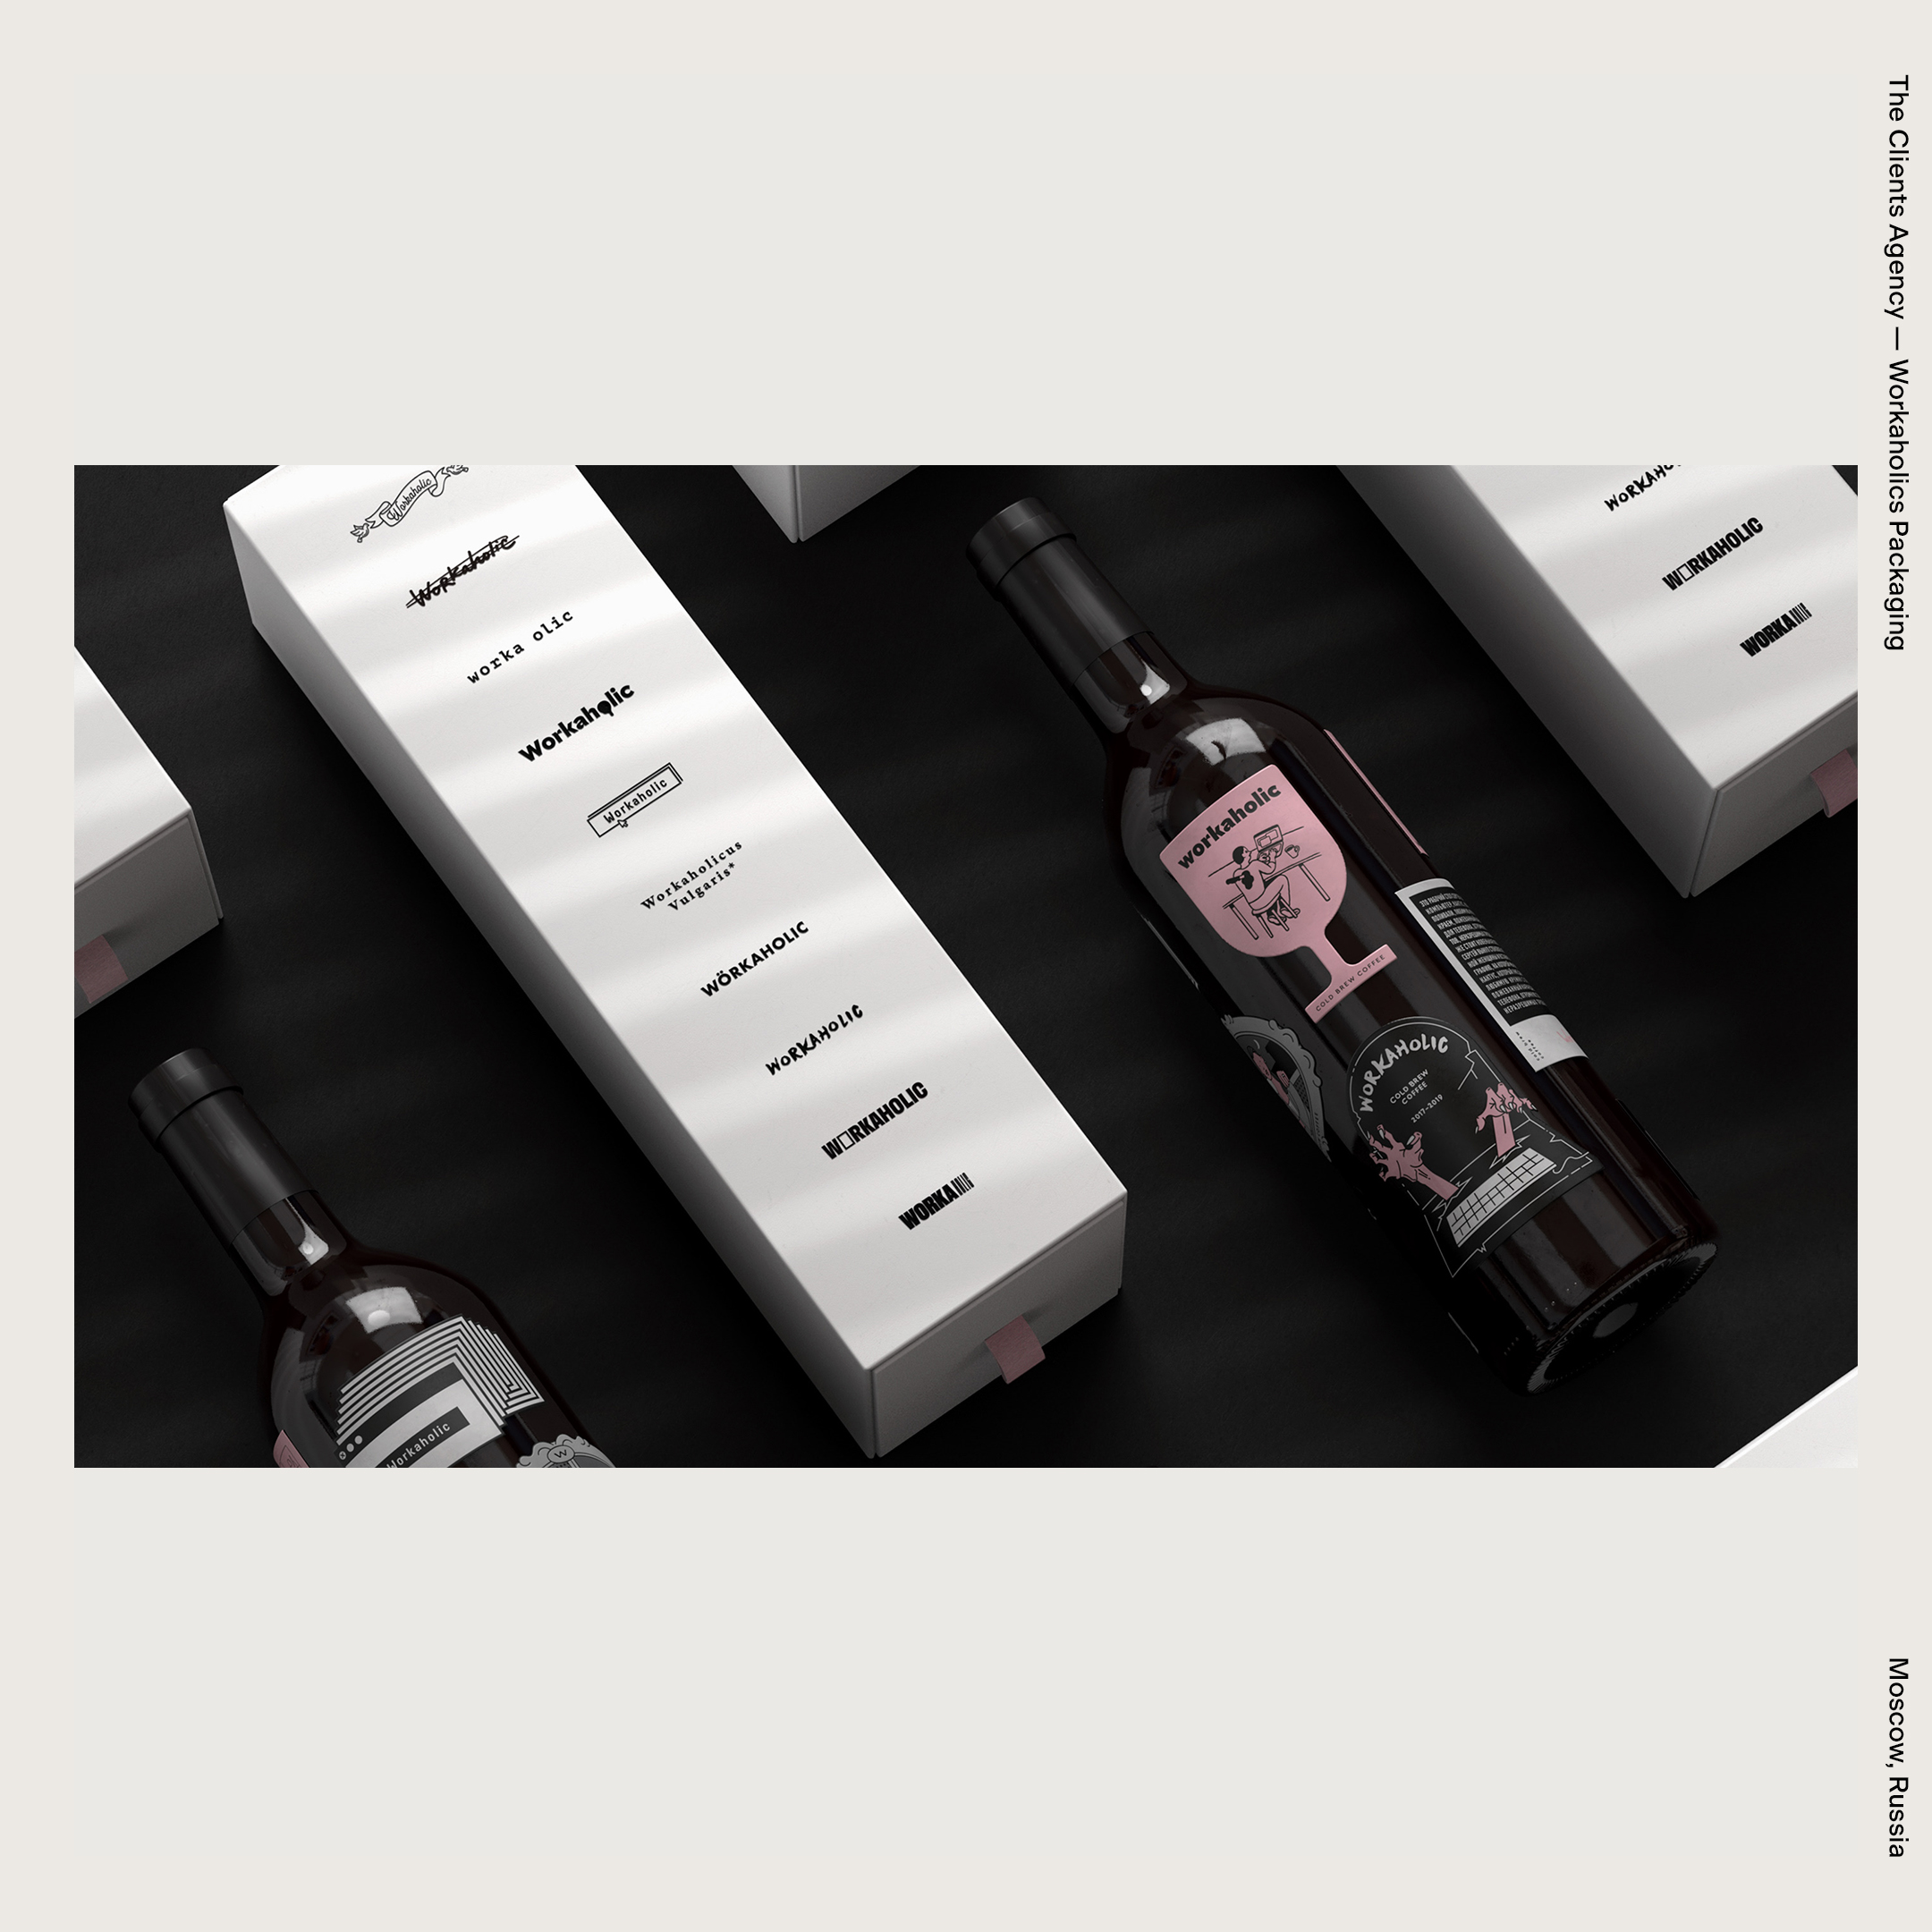 The Clients Agency — Workaholics Packaging